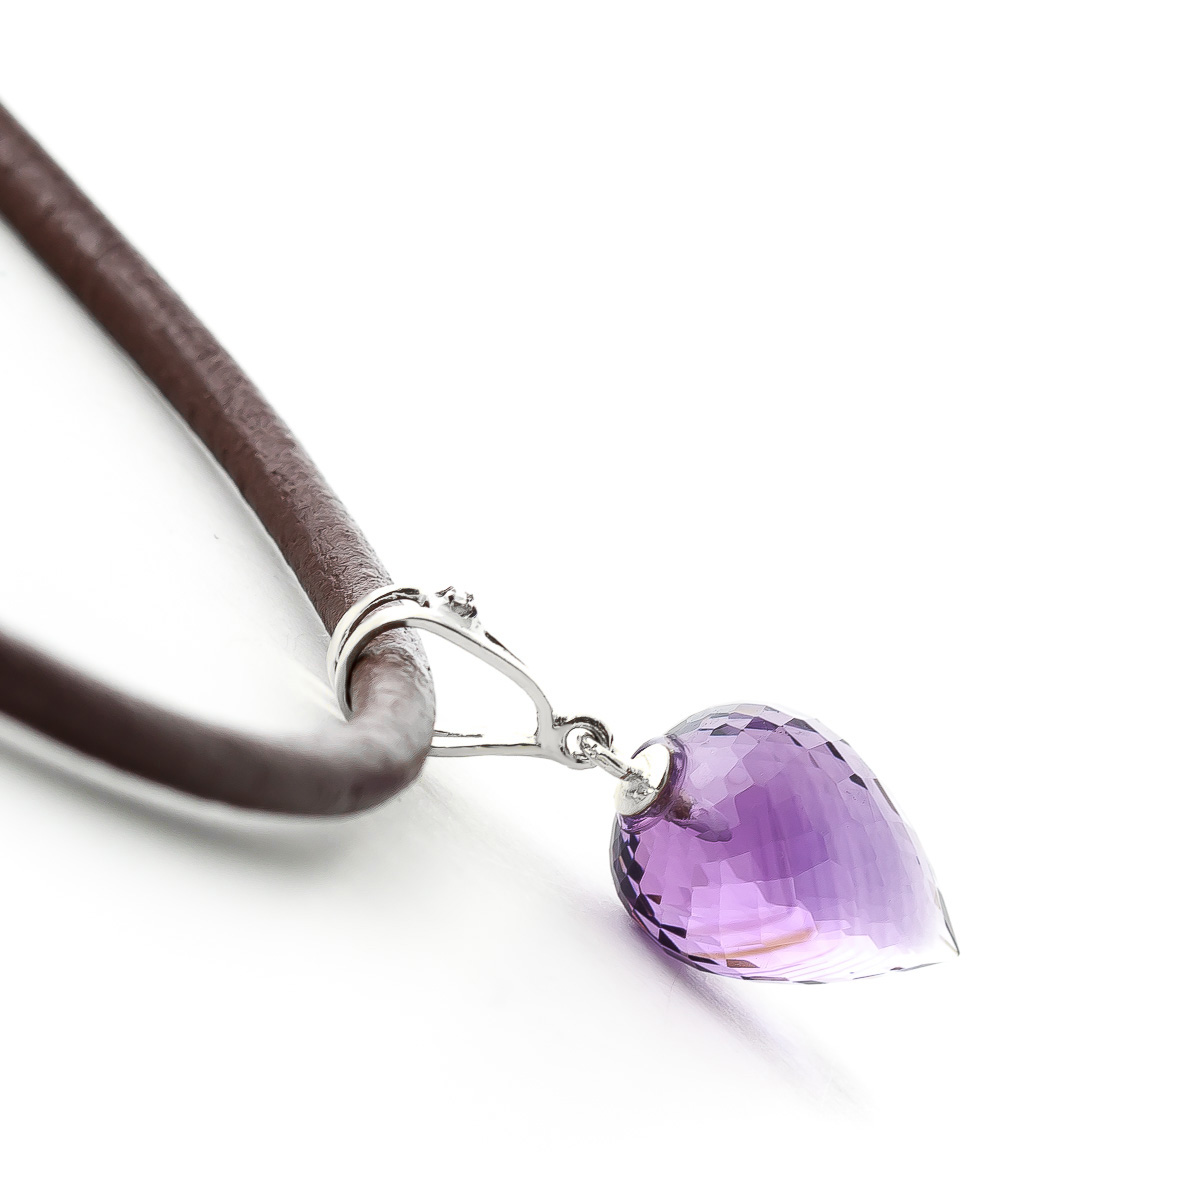 Amethyst and Diamond Leather Pendant Necklace 9.5ct in 14K White Gold